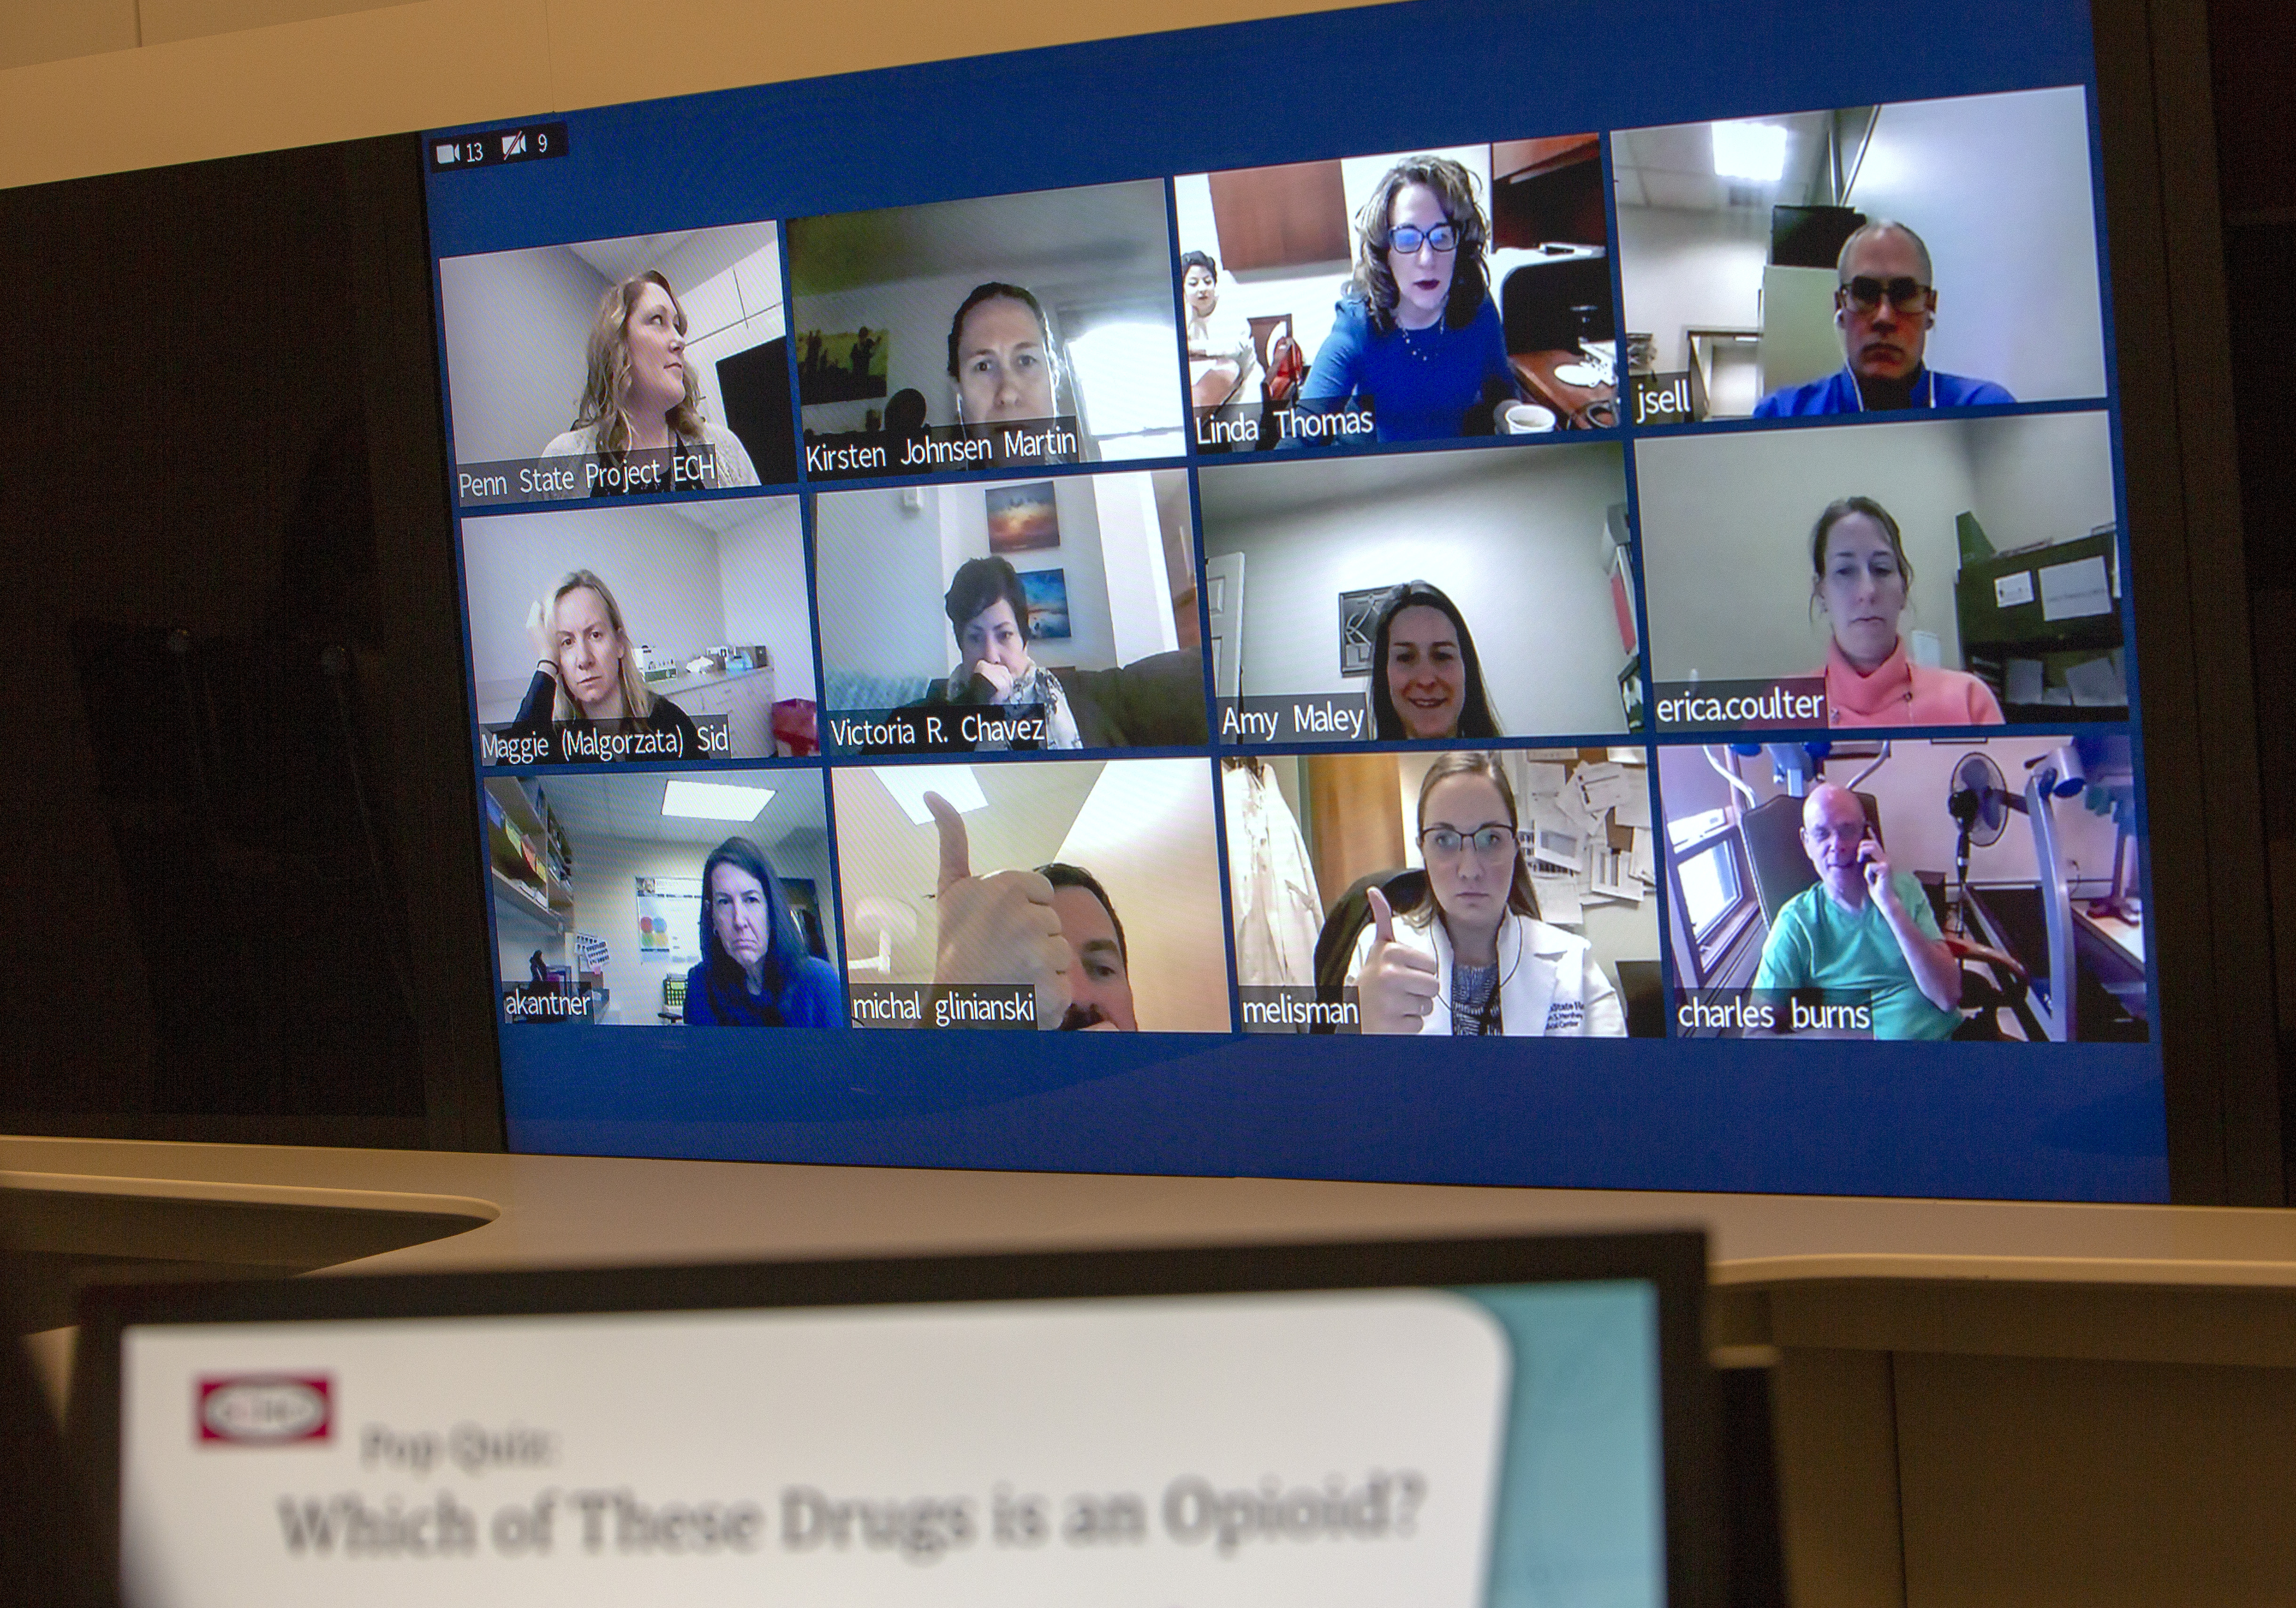 "A large screen contains 12 mini screens showing physicians participating in Project ECHO. The participants are looking into their own web cams as they participate in the session; some are smiling and giving a thumbs up while others are serious. In the foreground, an out-of-focus screen reads ""Pop Quiz: Which of these drugs is an opioid?"""